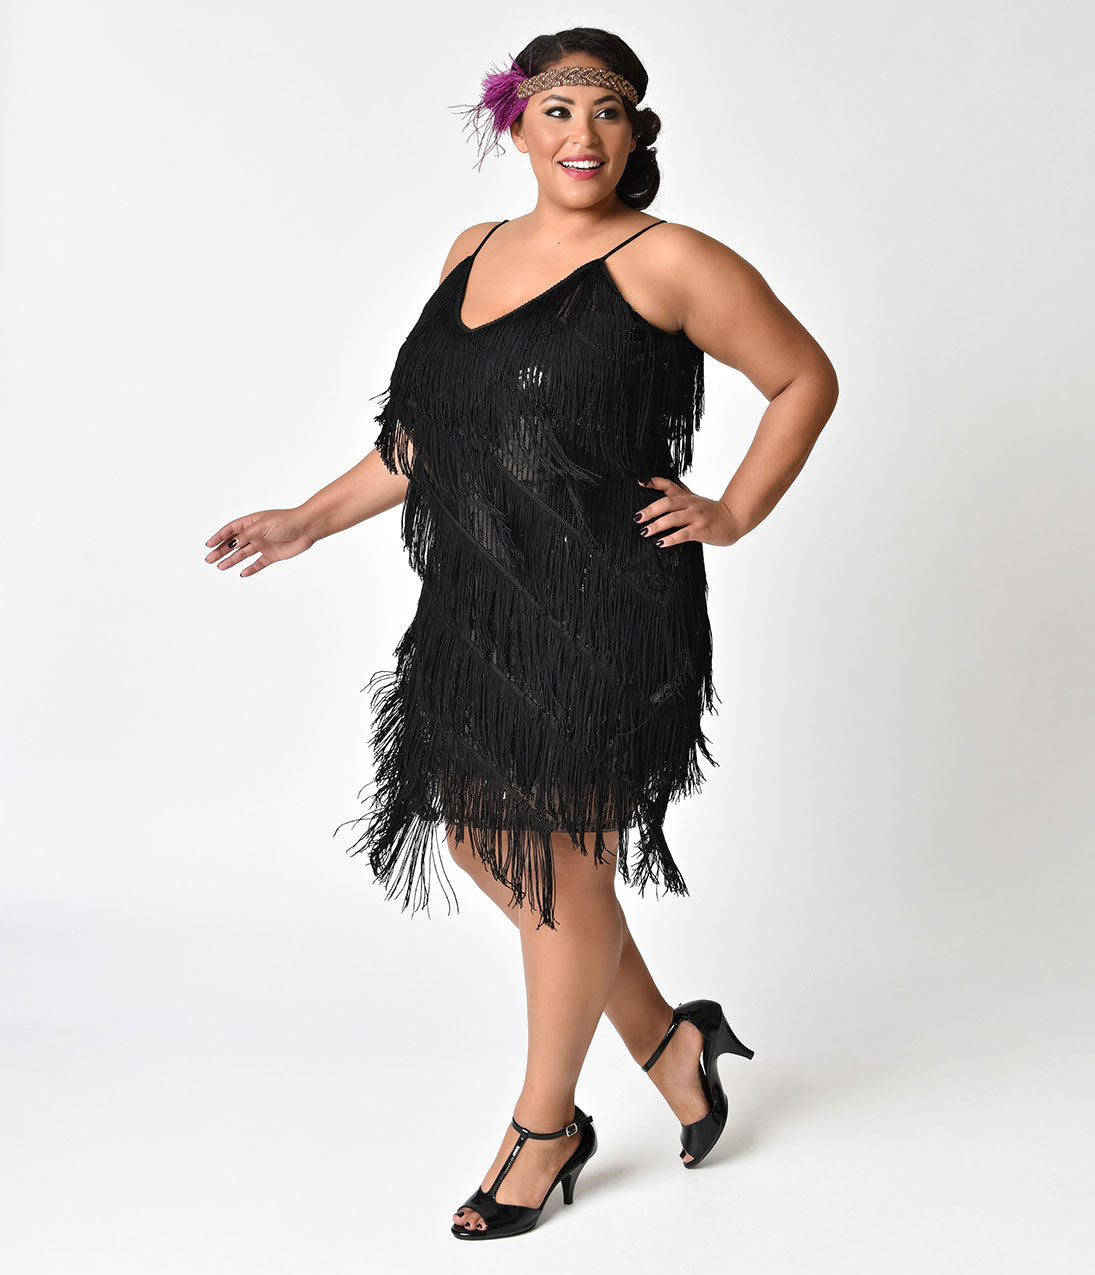 Roaring 20s Costumes- Flapper Costumes, Gangster Costumes Unique Vintage Plus Size 1920S Style Black Cecile Tiered Fringe Flapper Dress $35.00 AT vintagedancer.com